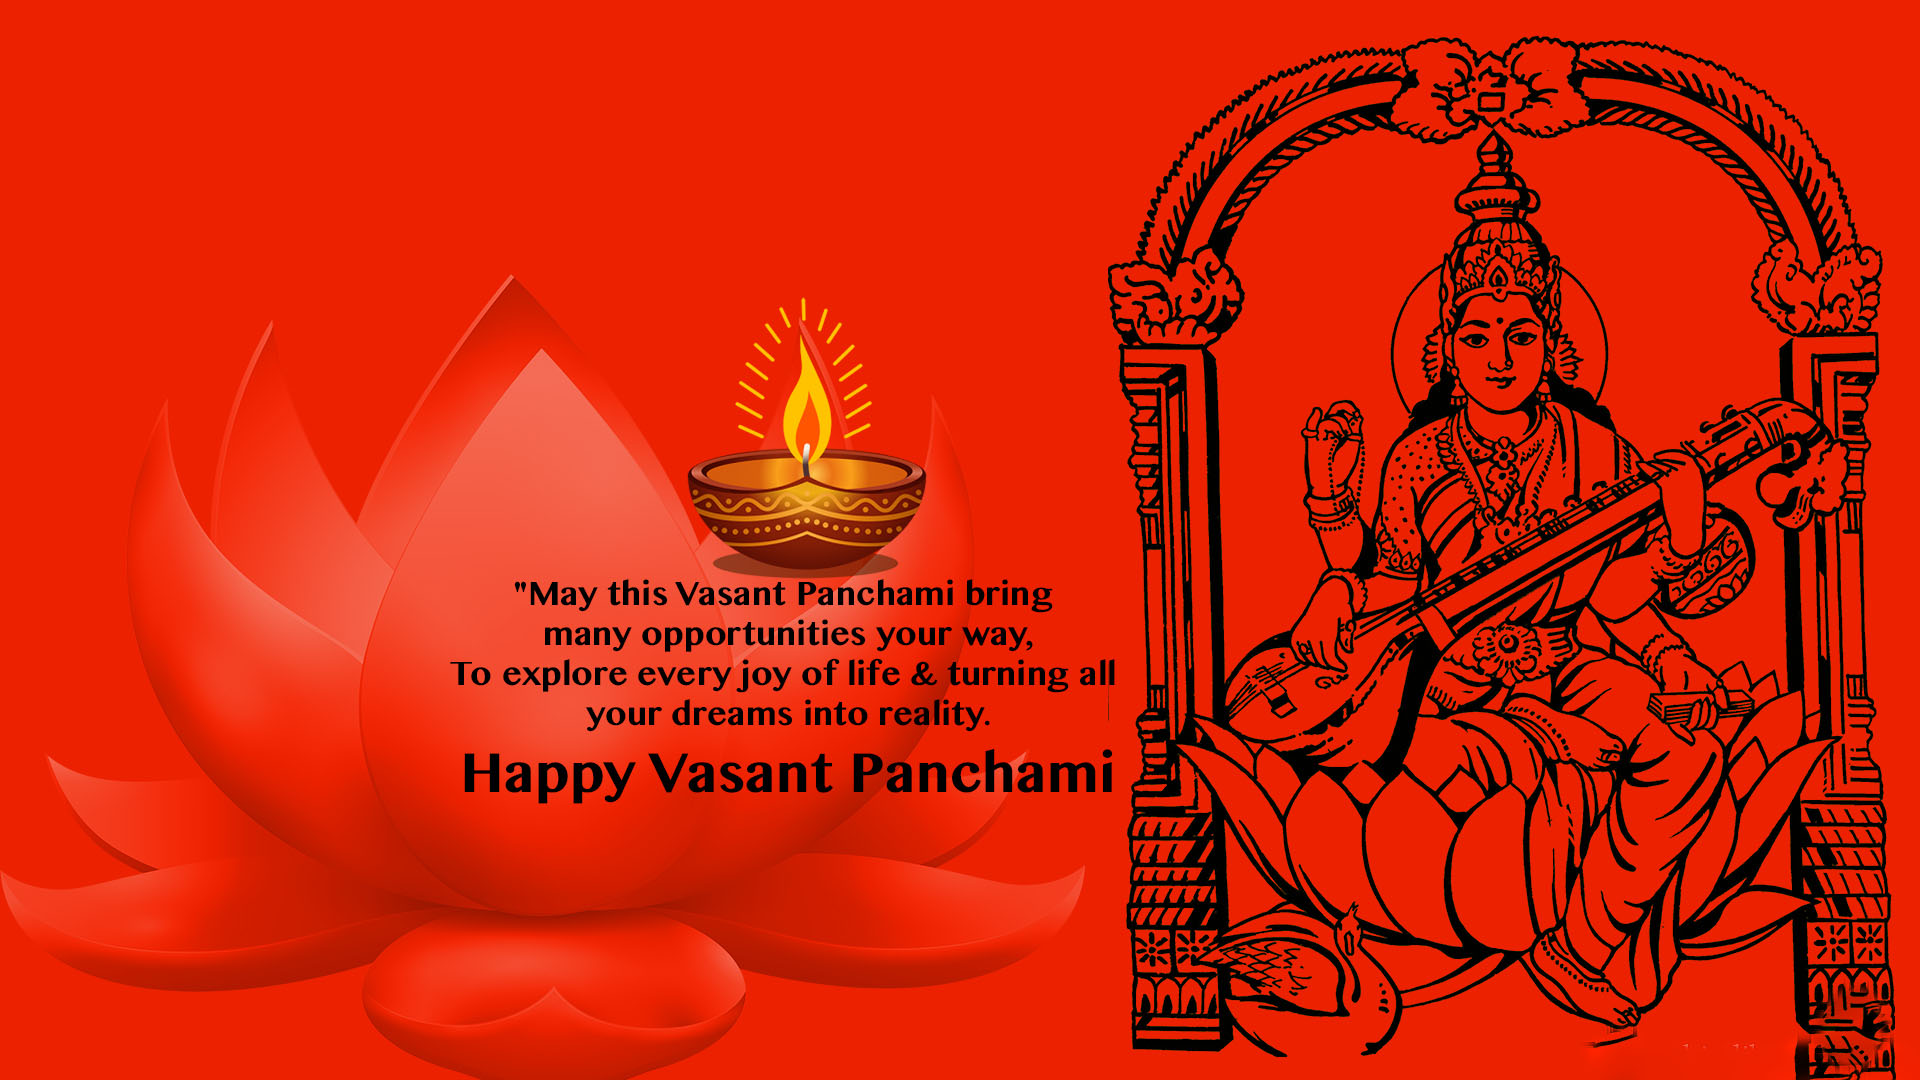 Vasant Panchami Hd Wallpapers Download